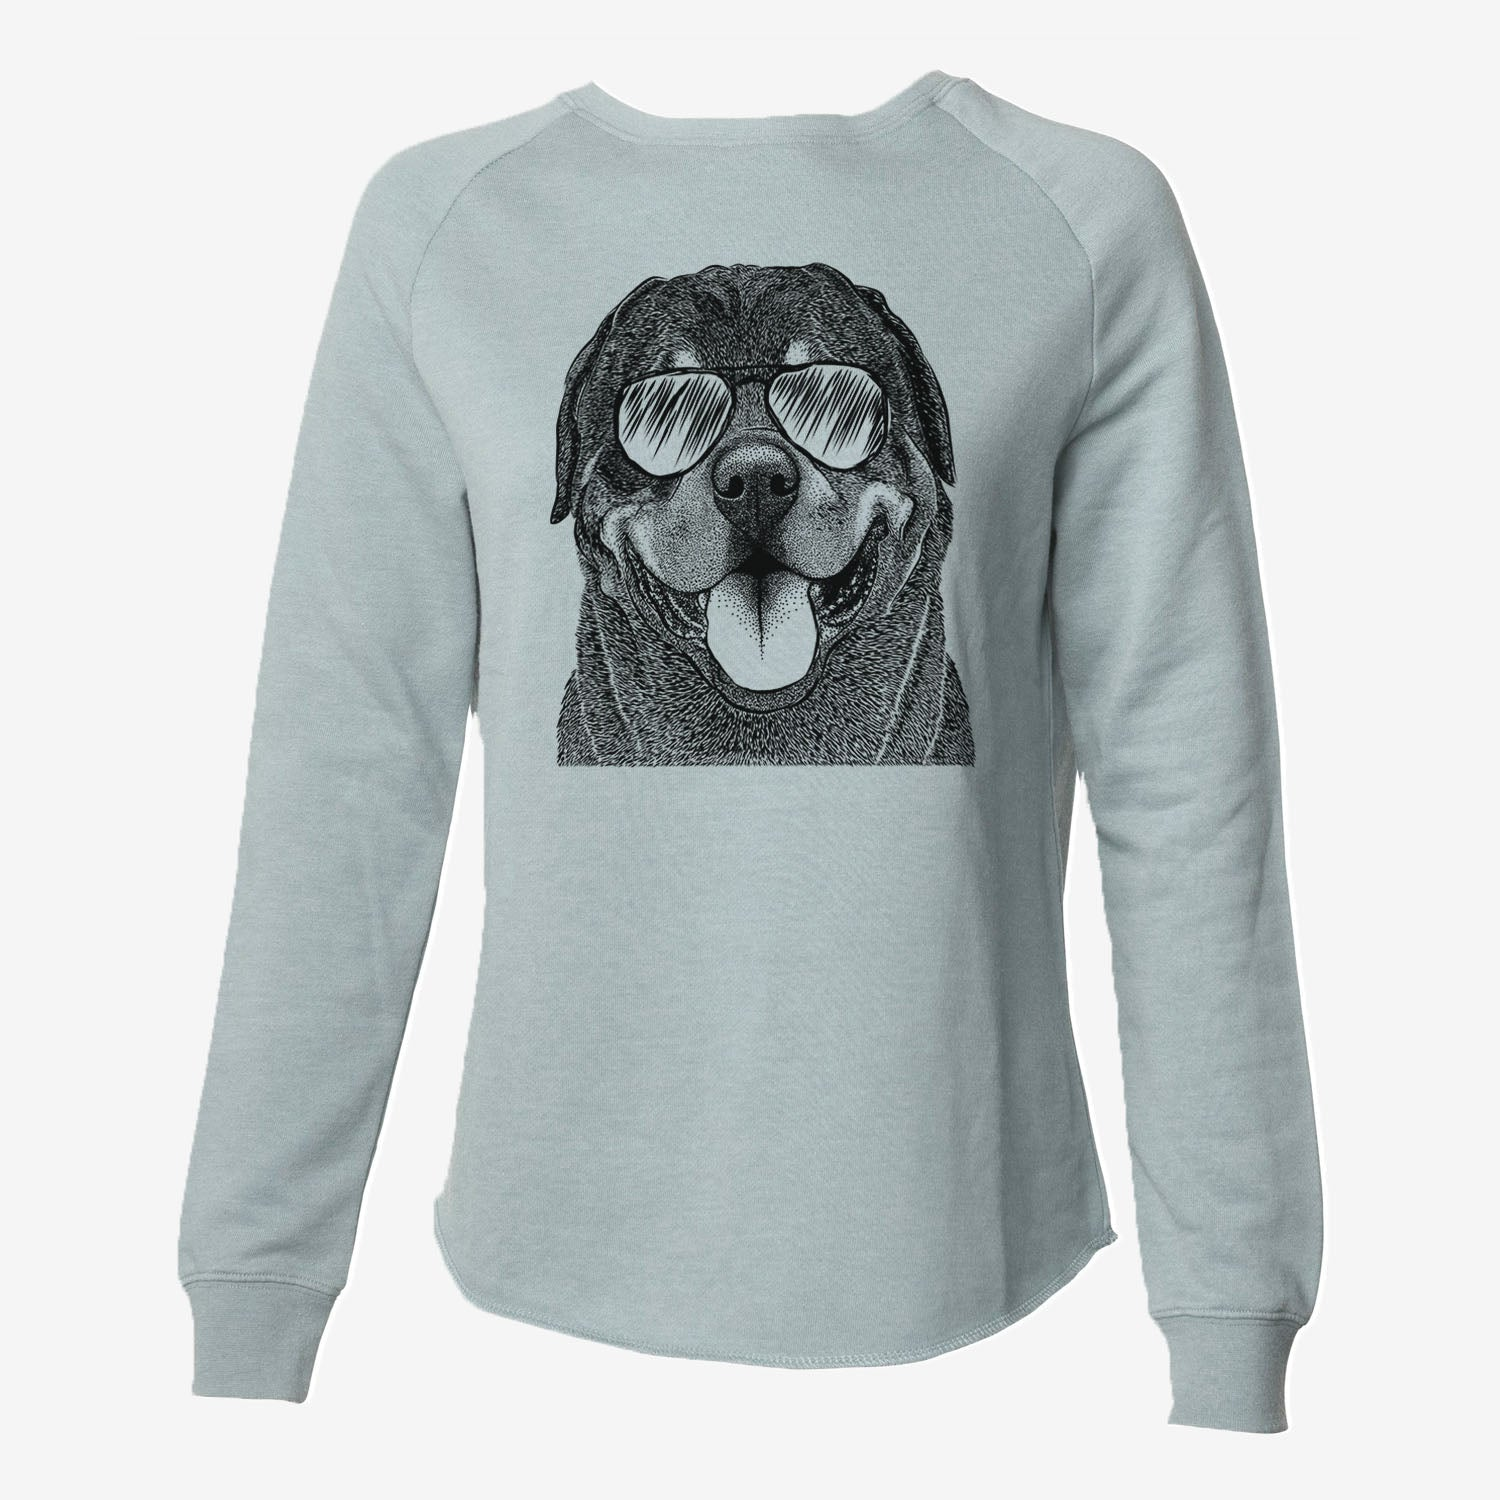 Hagan the Rottweiler - Cali Wave Crewneck Sweatshirt